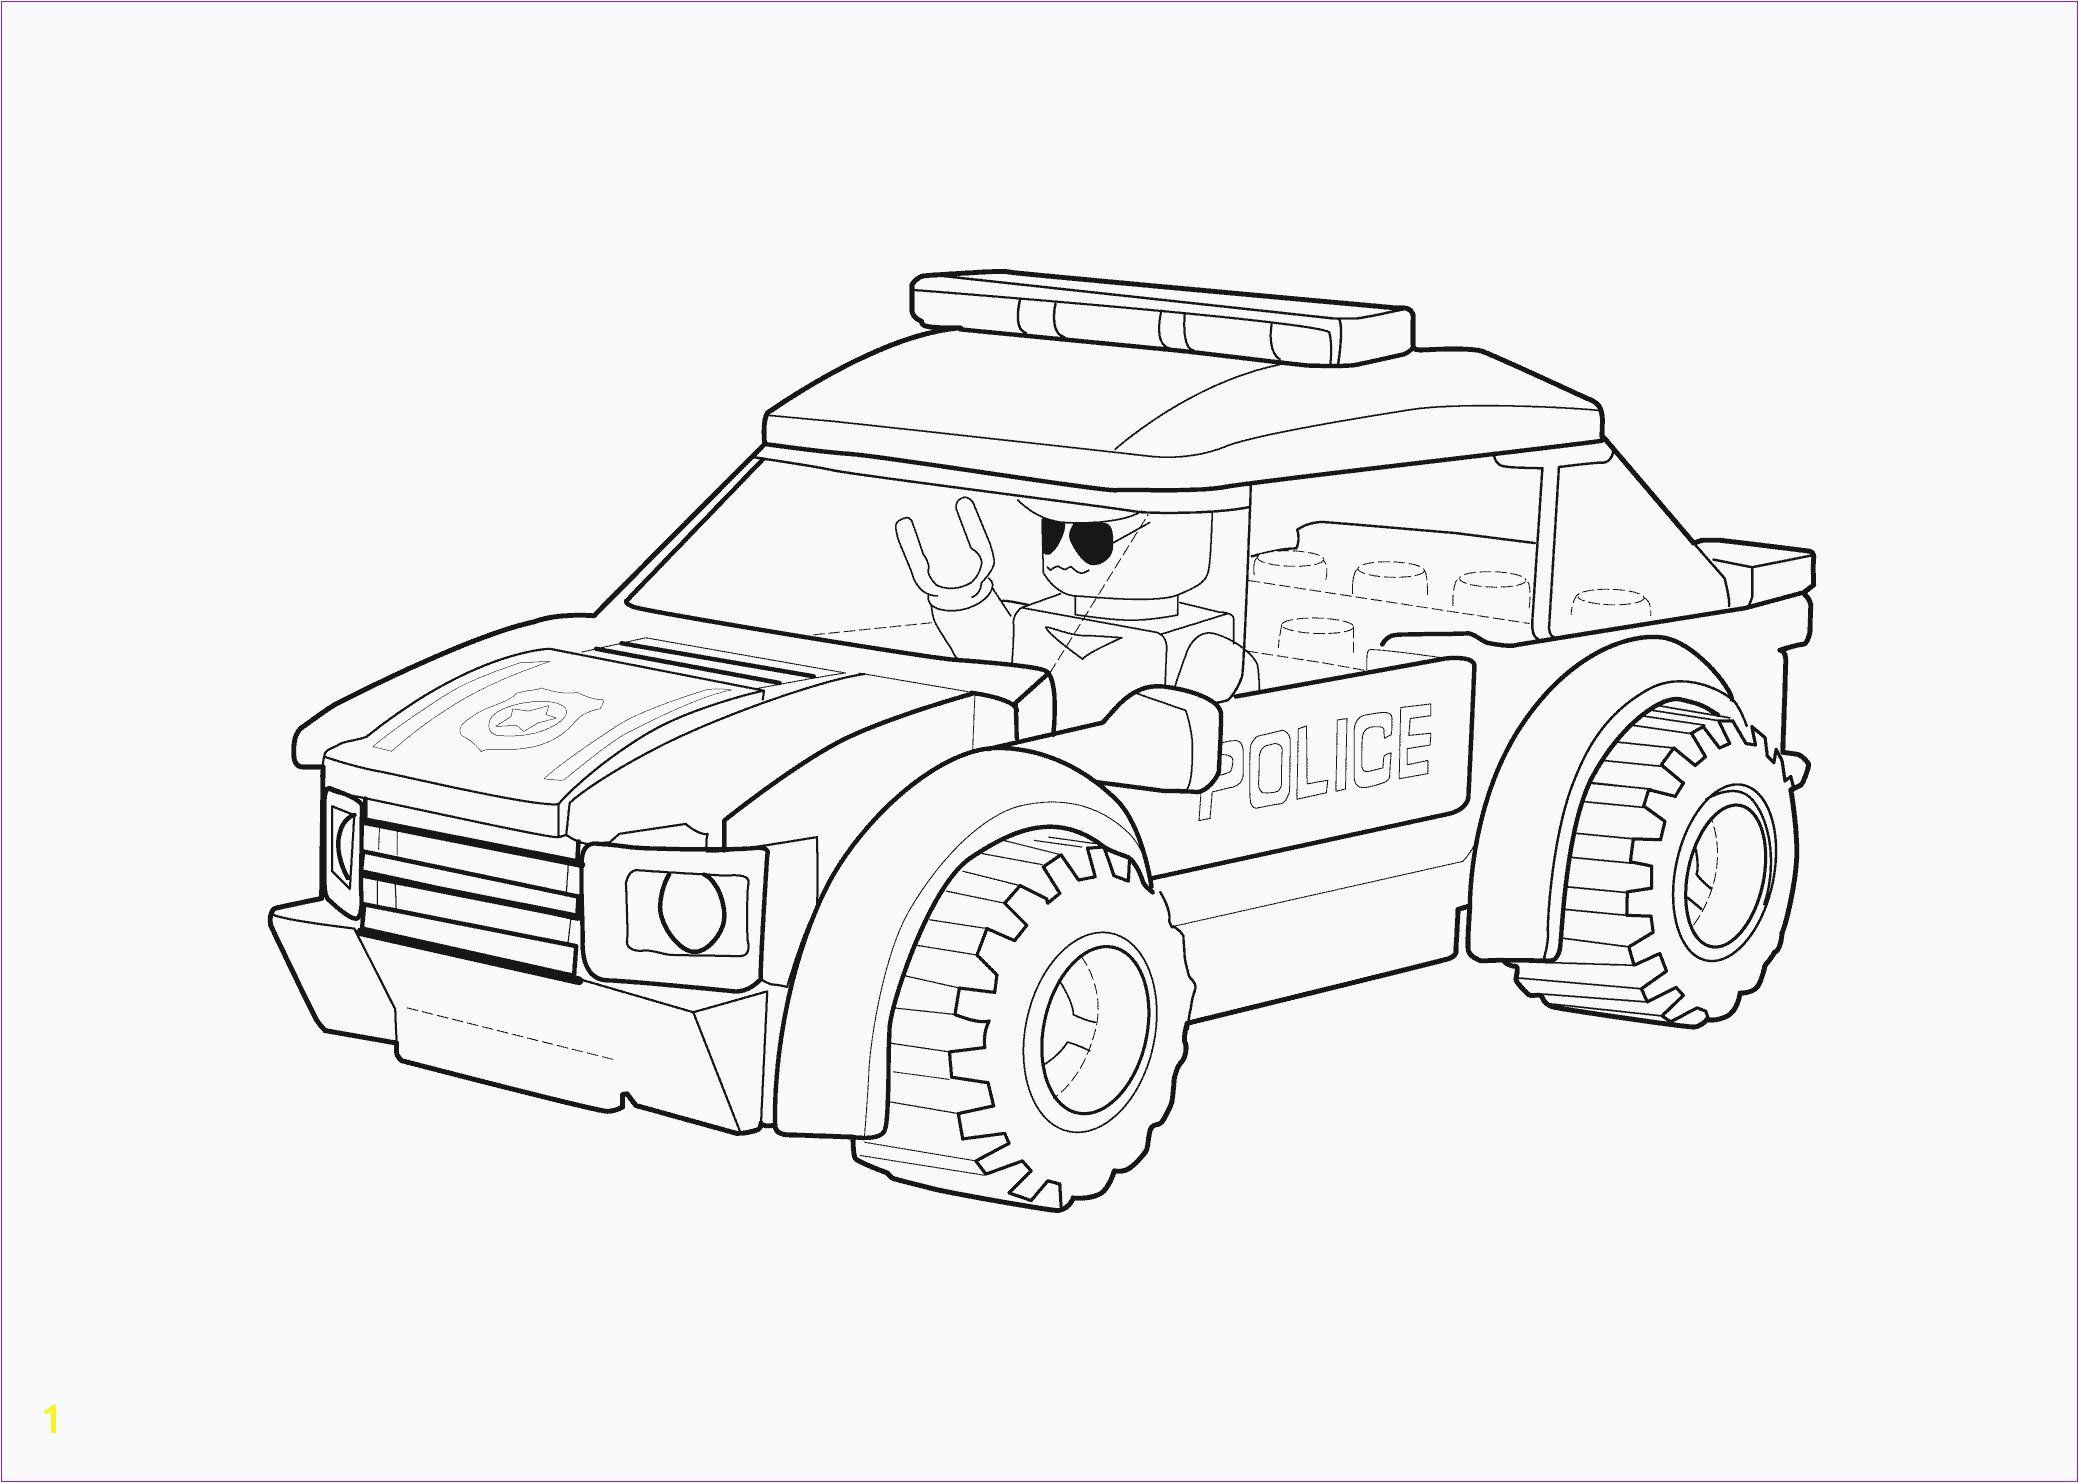 Coloring Pages The Flash Best Of The Flash Coloring Pages In 2020 Lego Coloring Pages Lego Coloring Batman Coloring Pages